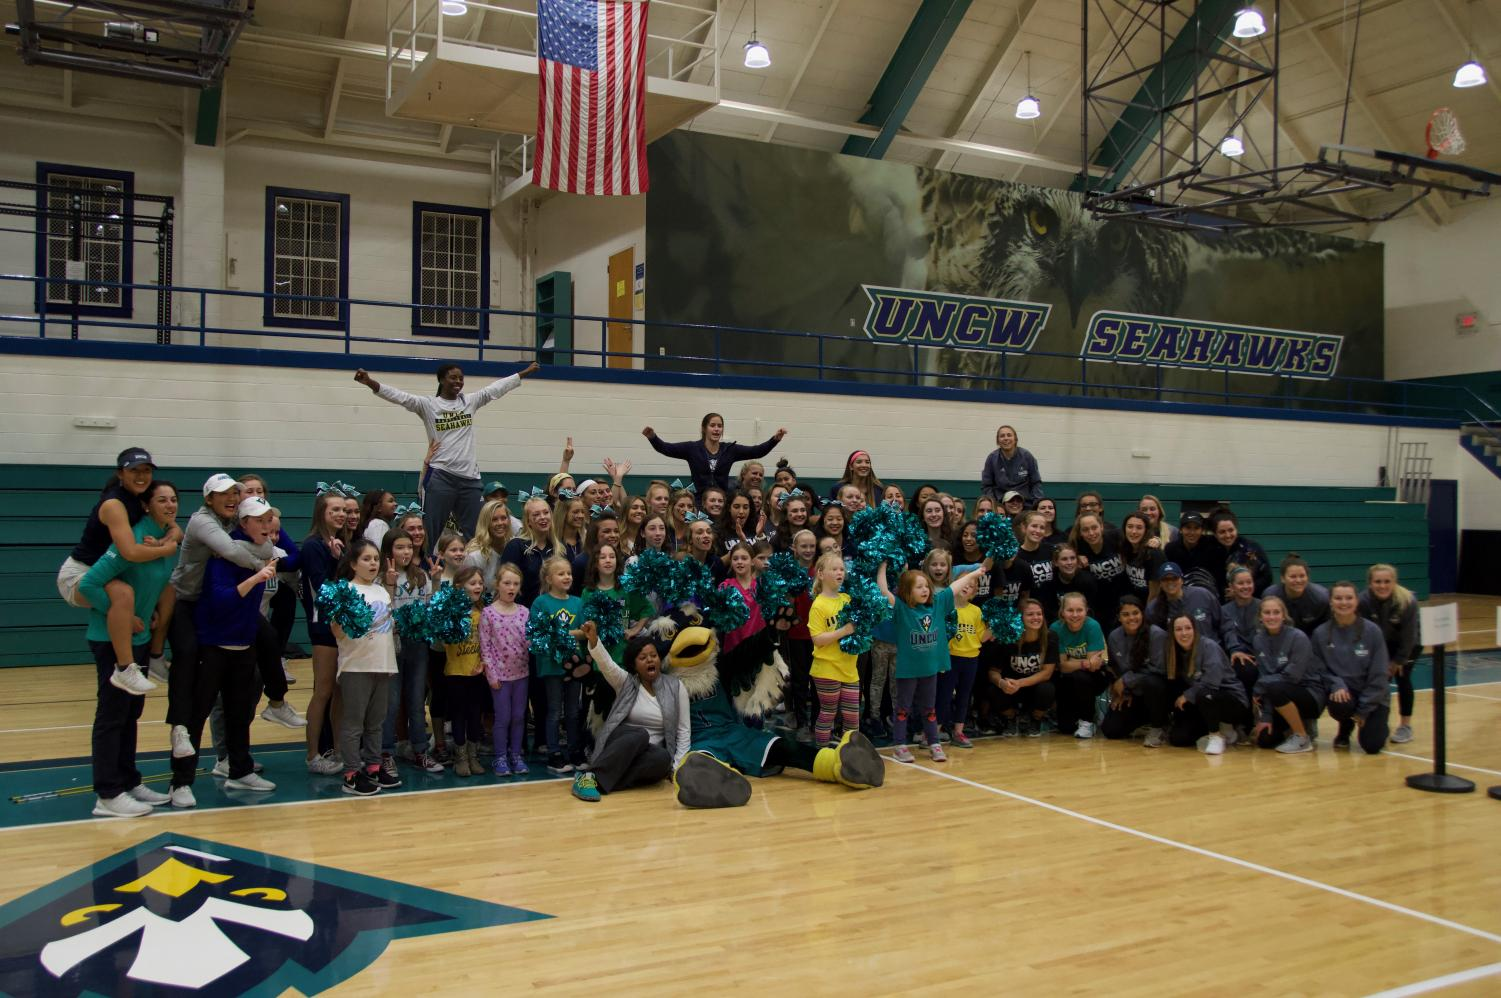 UNCW women's sports teams and young female athletes gathered for a group picture at Friday's National Girls and Women in Sports Day event.